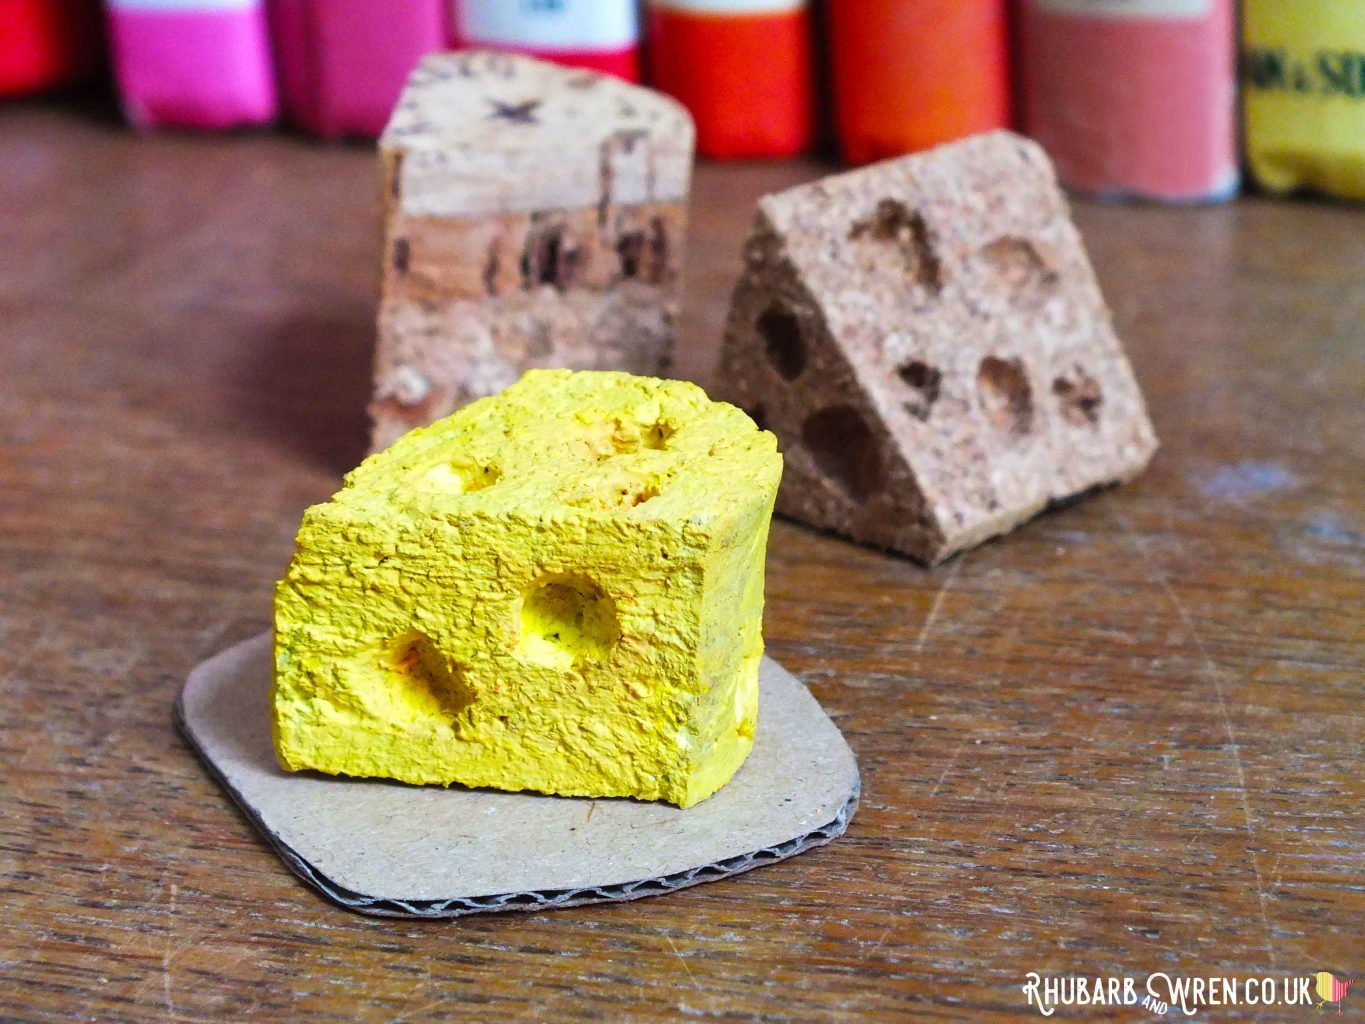 Doll food wedge of cheese made from painted wine cork